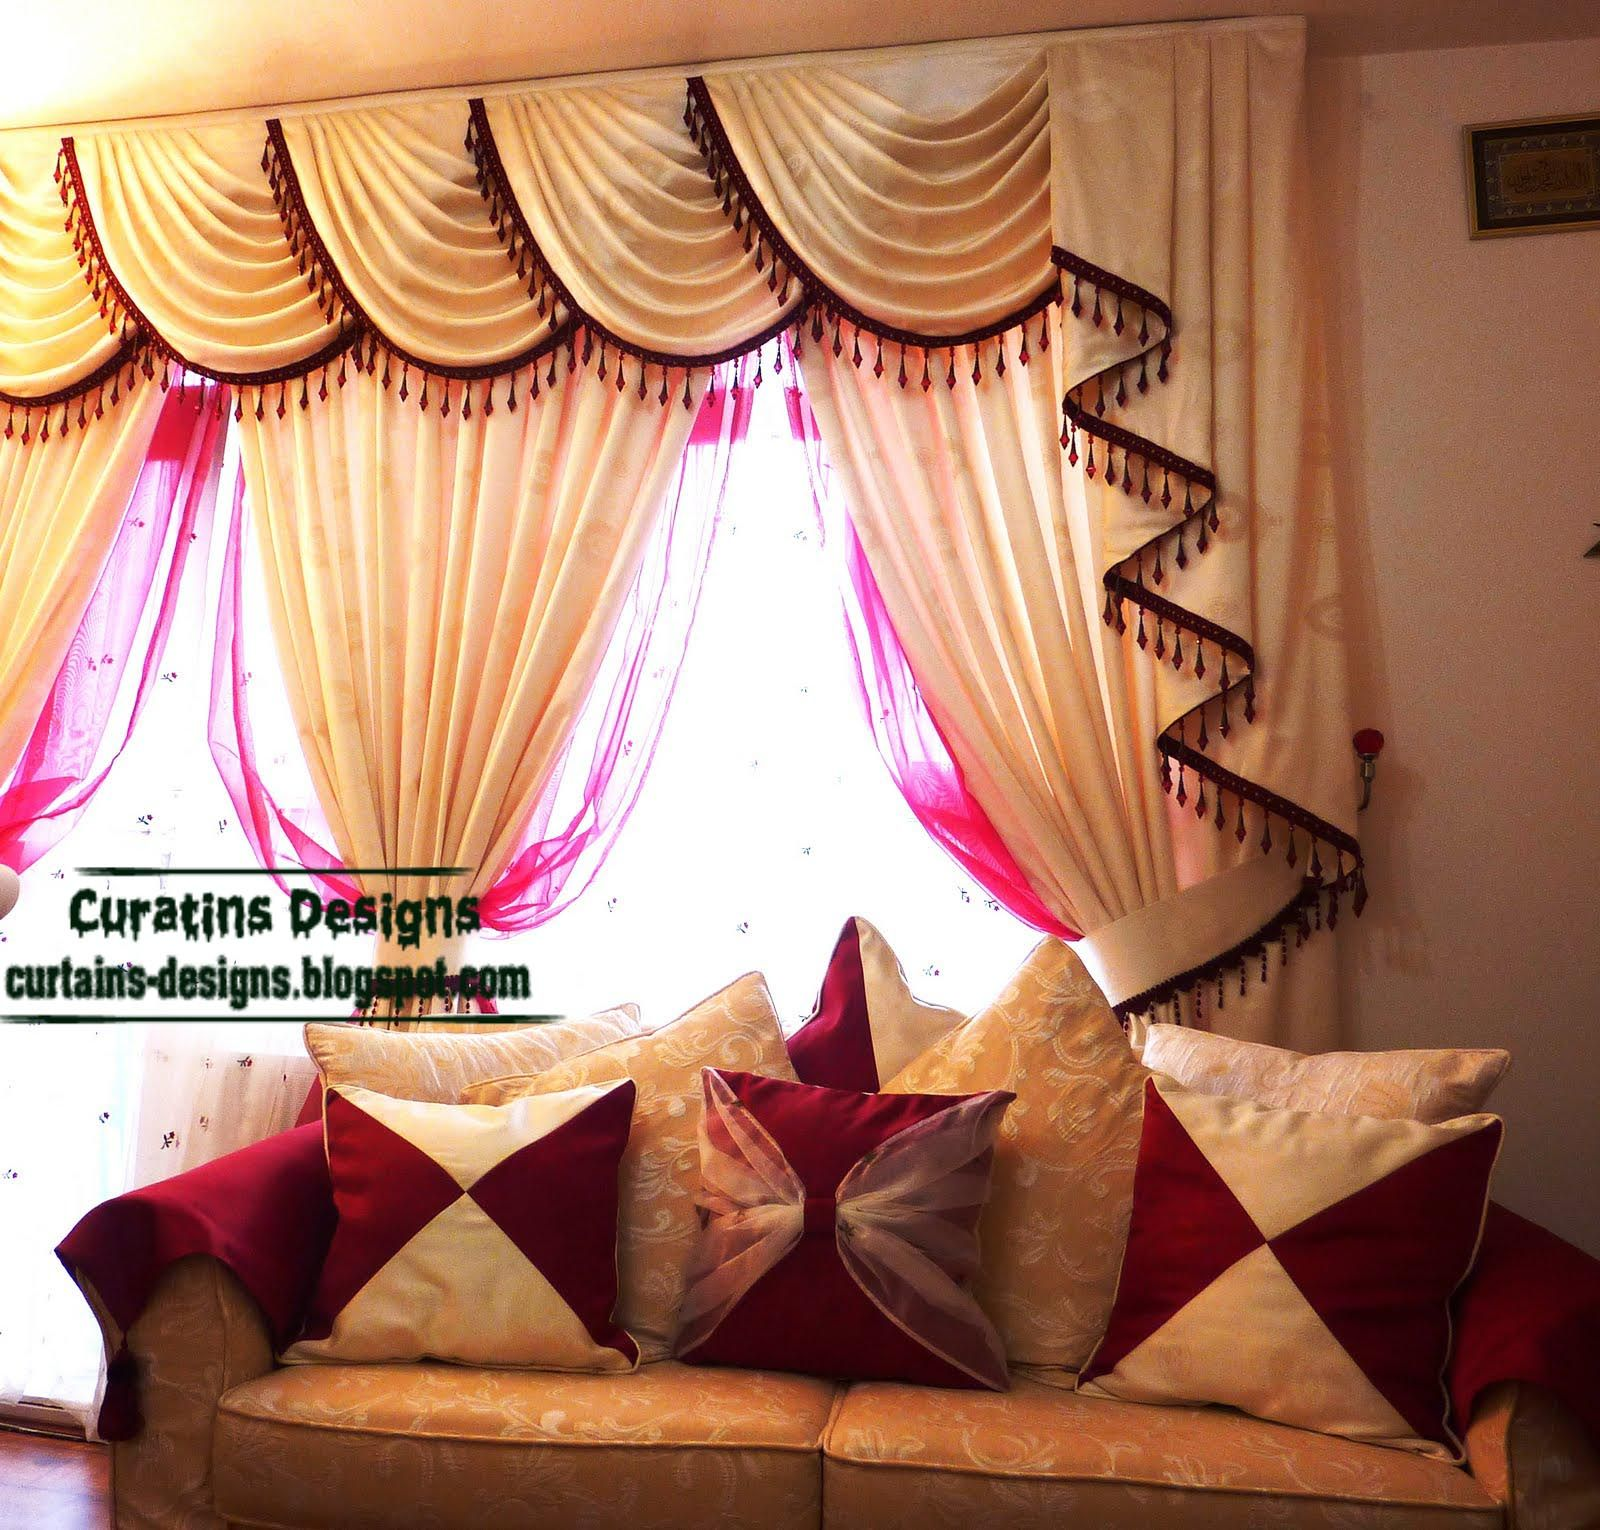 Indian Drapes Curtain Design For Living Room Beige Curtains Living Room Curtain Designs Latest Curtain Designs